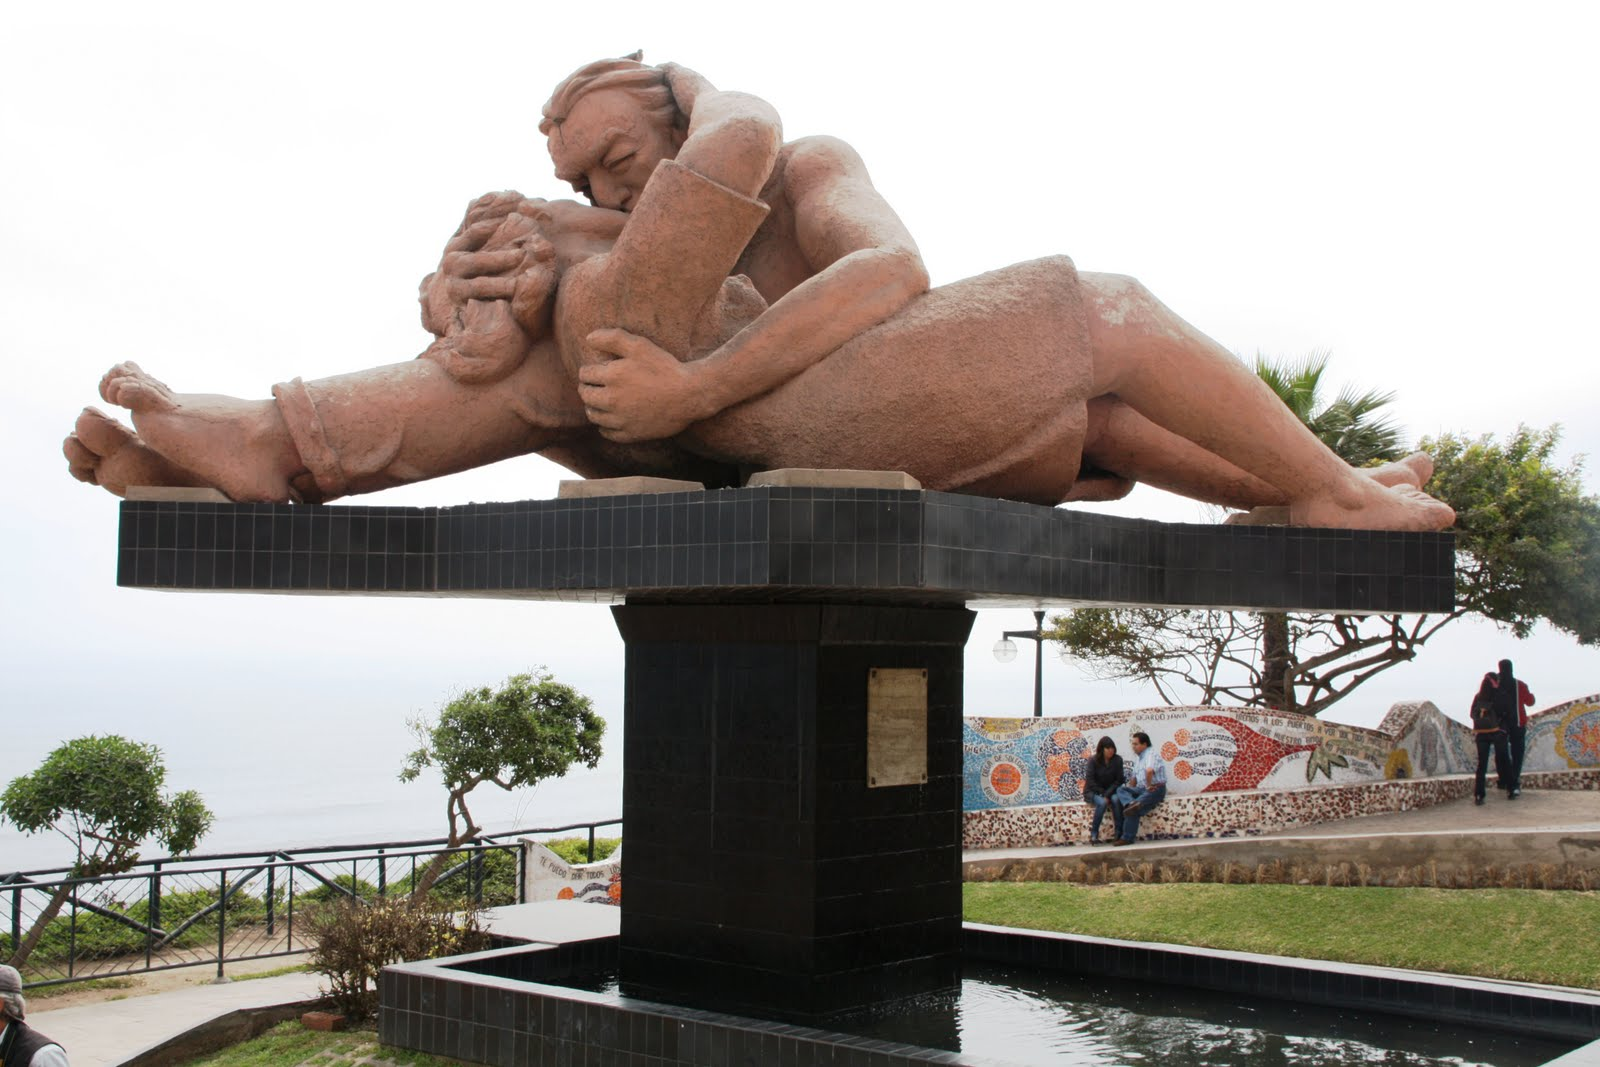 Trip to Miraflores in Lima in Search of the Kiss in the Park of Love